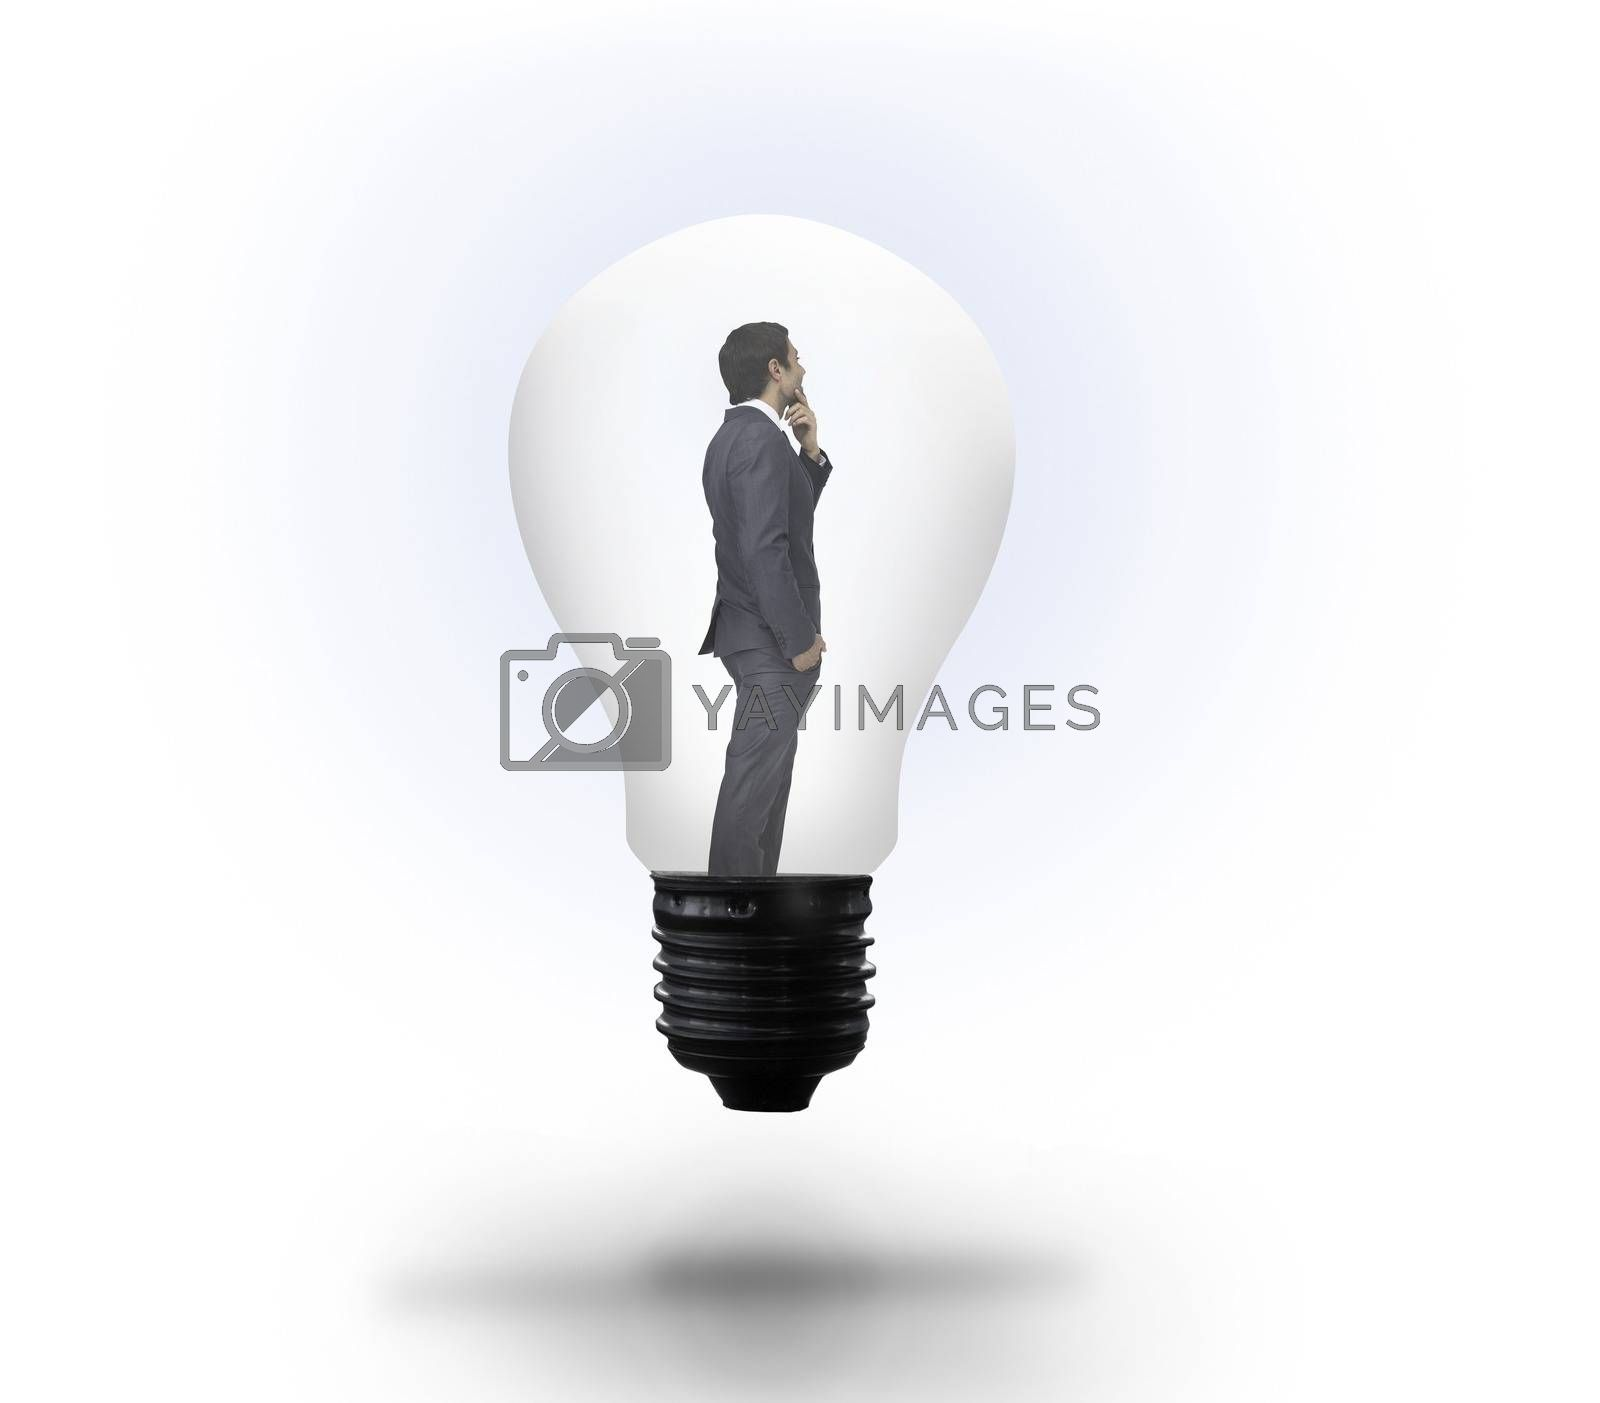 Royalty free image of Thinking businessman in light bulb by Wavebreakmedia